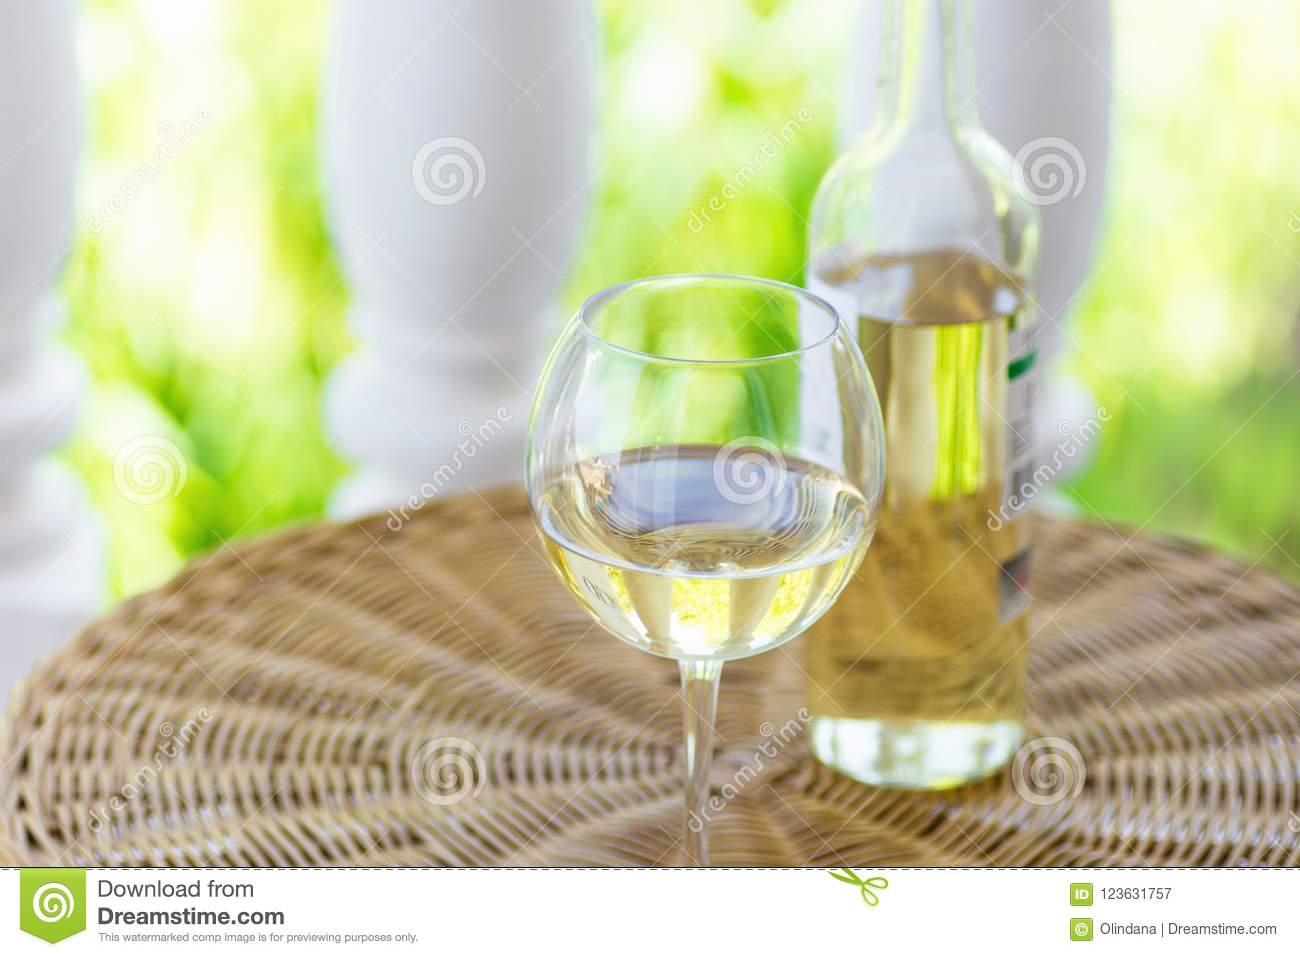 Glass of white dry wine and bottle on wicker table on garden terrace of villa or mansion. Authentic lifestyle image.